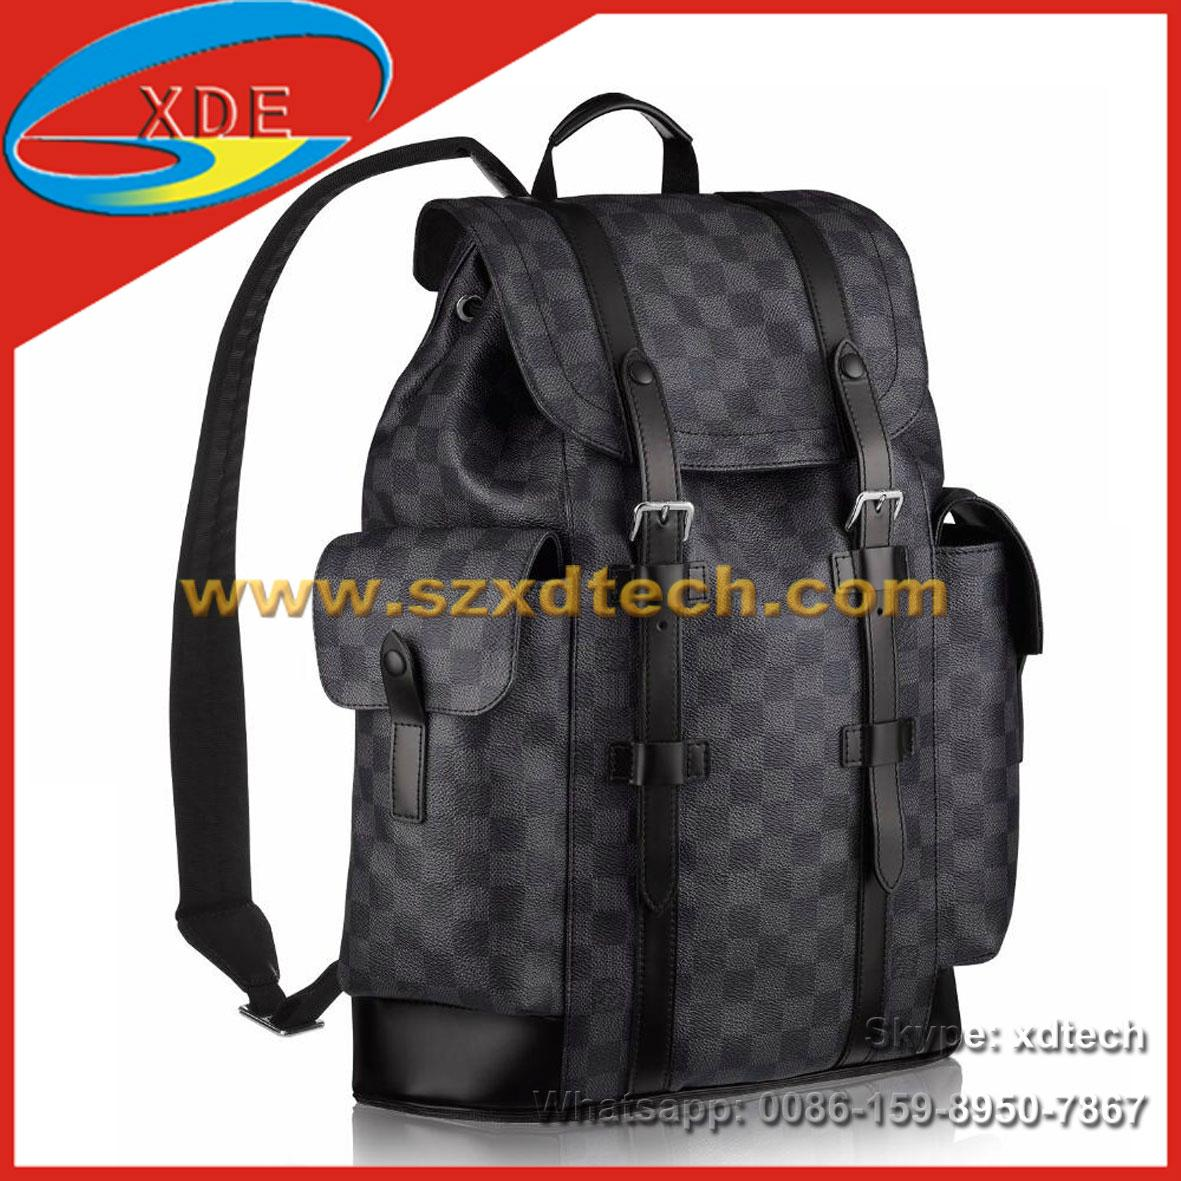 Luxury and Fashion LV Backpacks CHRISTOPHER PM N41379 Best Seller Travel Bags 1